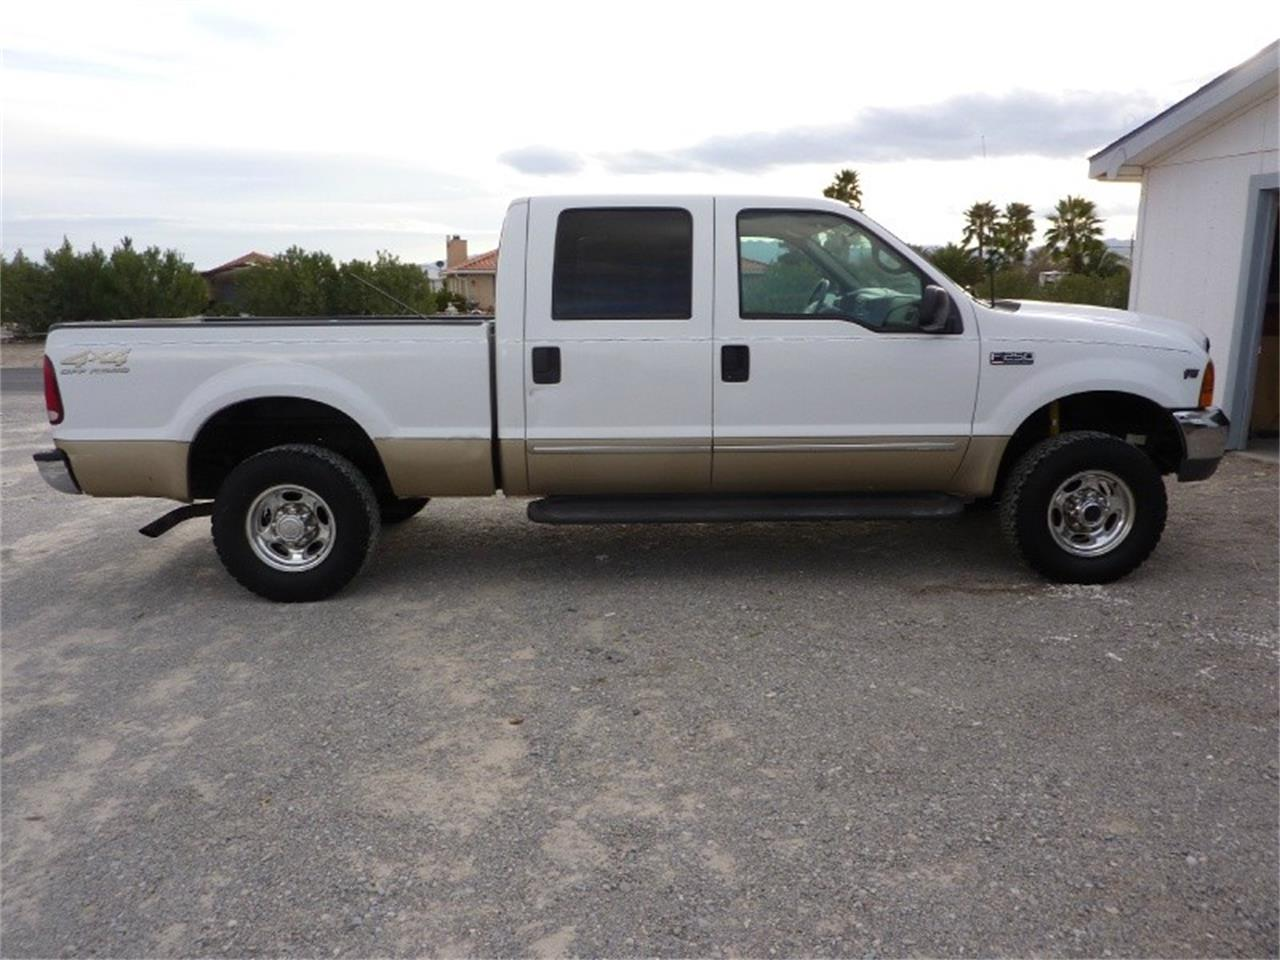 Large Picture of '00 Ford F250 located in California - $7,999.00 - MCHA